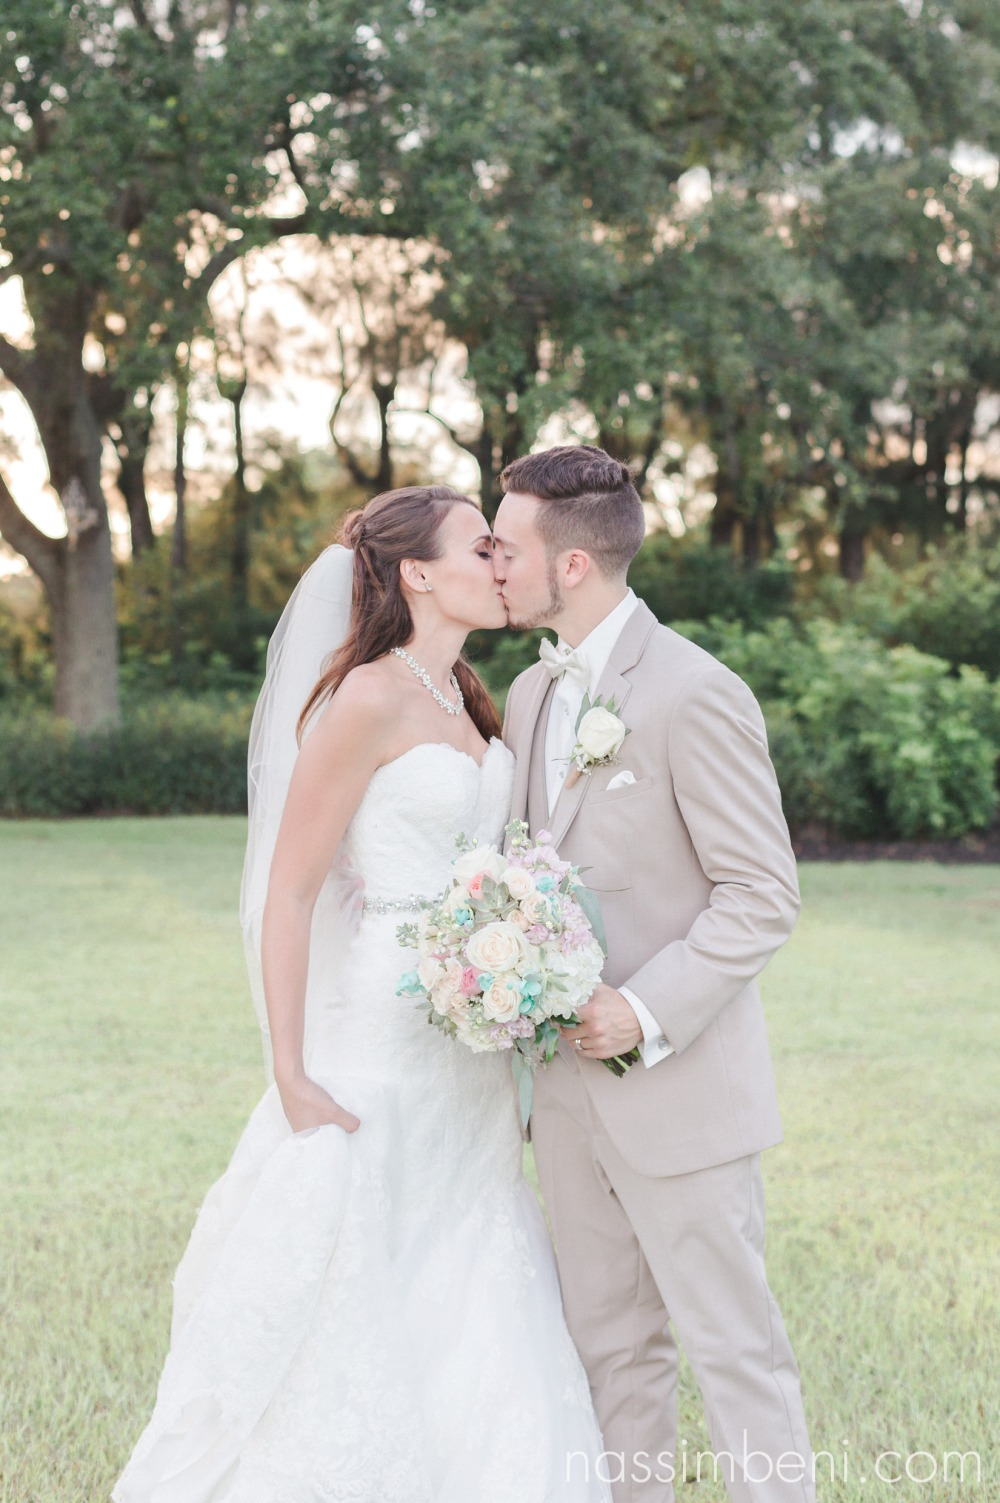 bride and groom kiss at bellewood plantation wedding venue by Nassimbeni Photography